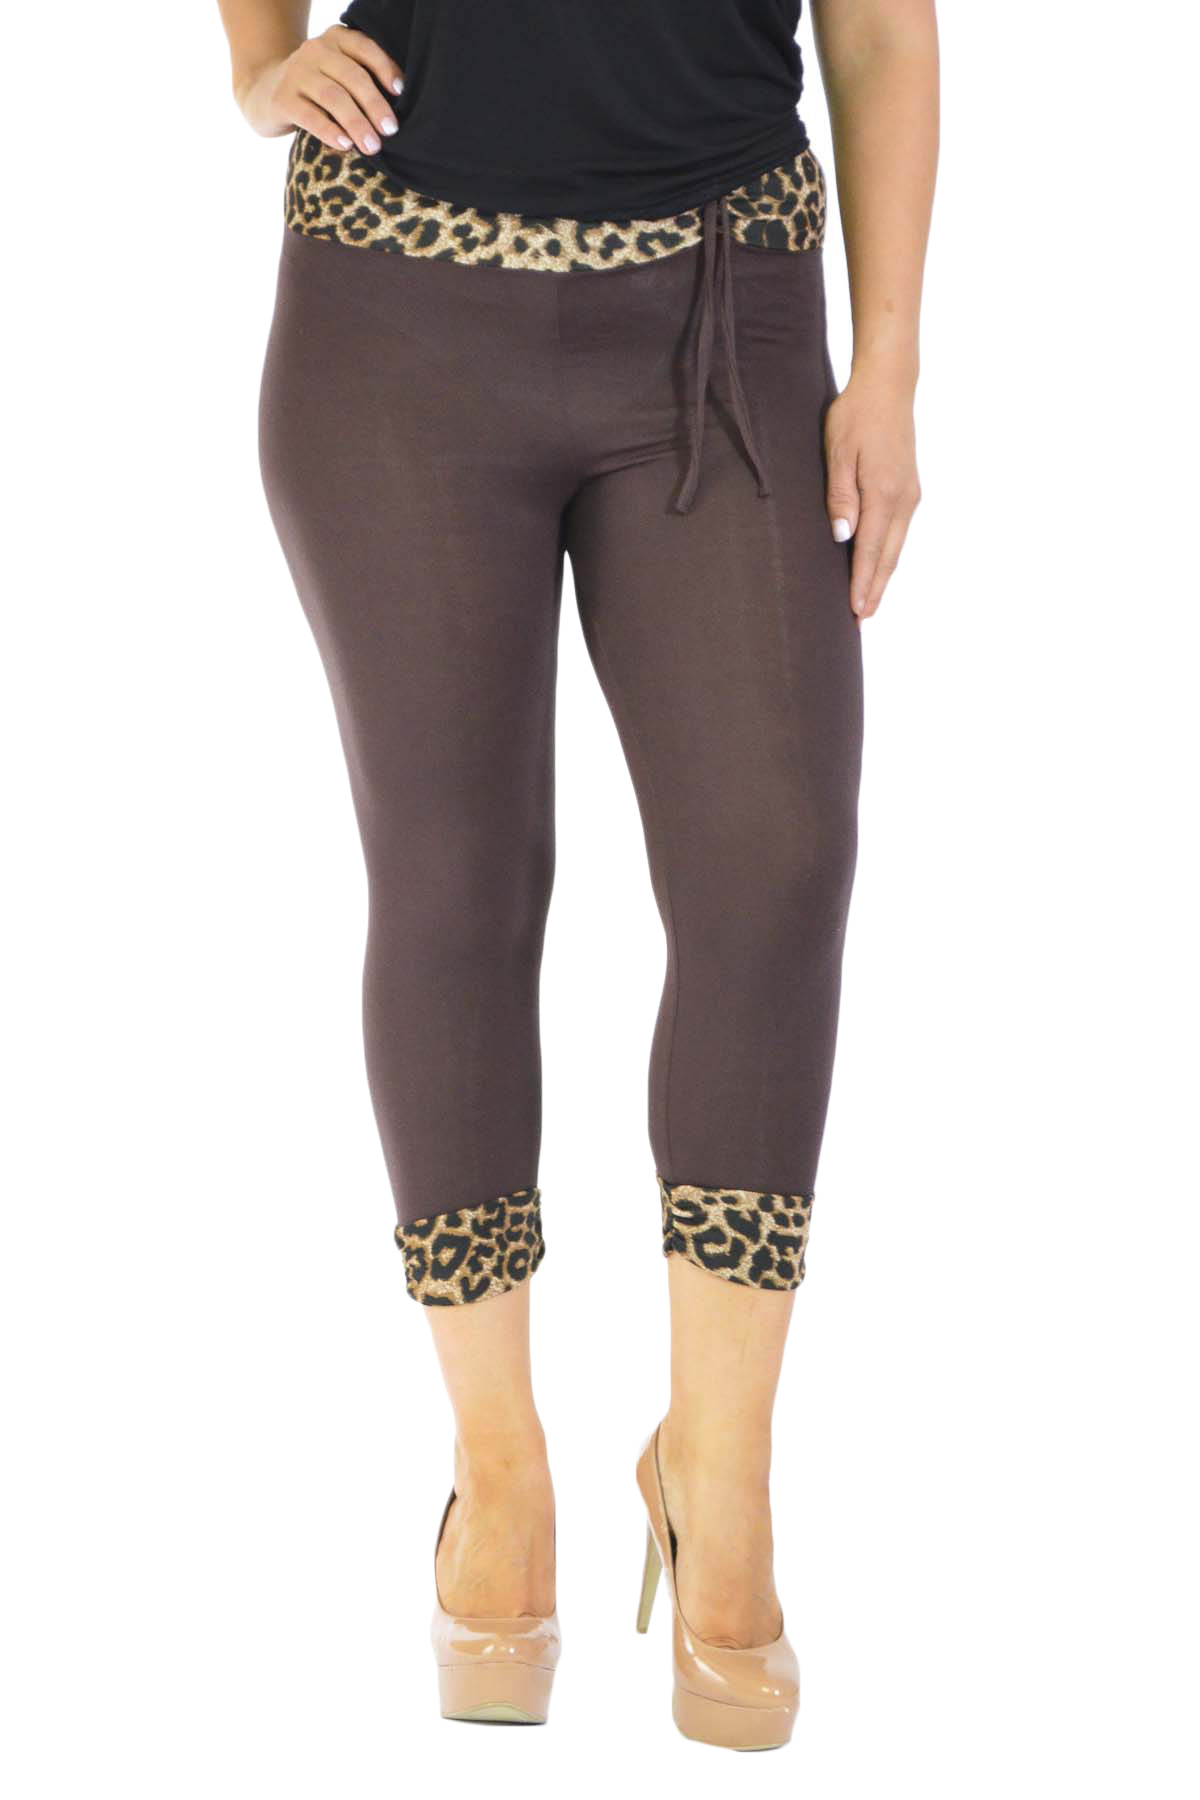 If you are looking for that perfect animal print legging then you are going to have to try our Plus Size Leopard Leggings. This is a photo-realistic fur textured leopard style design that gives amazing detail in a laser print that will ignite your wardrobe with new sexy outfit combinations.